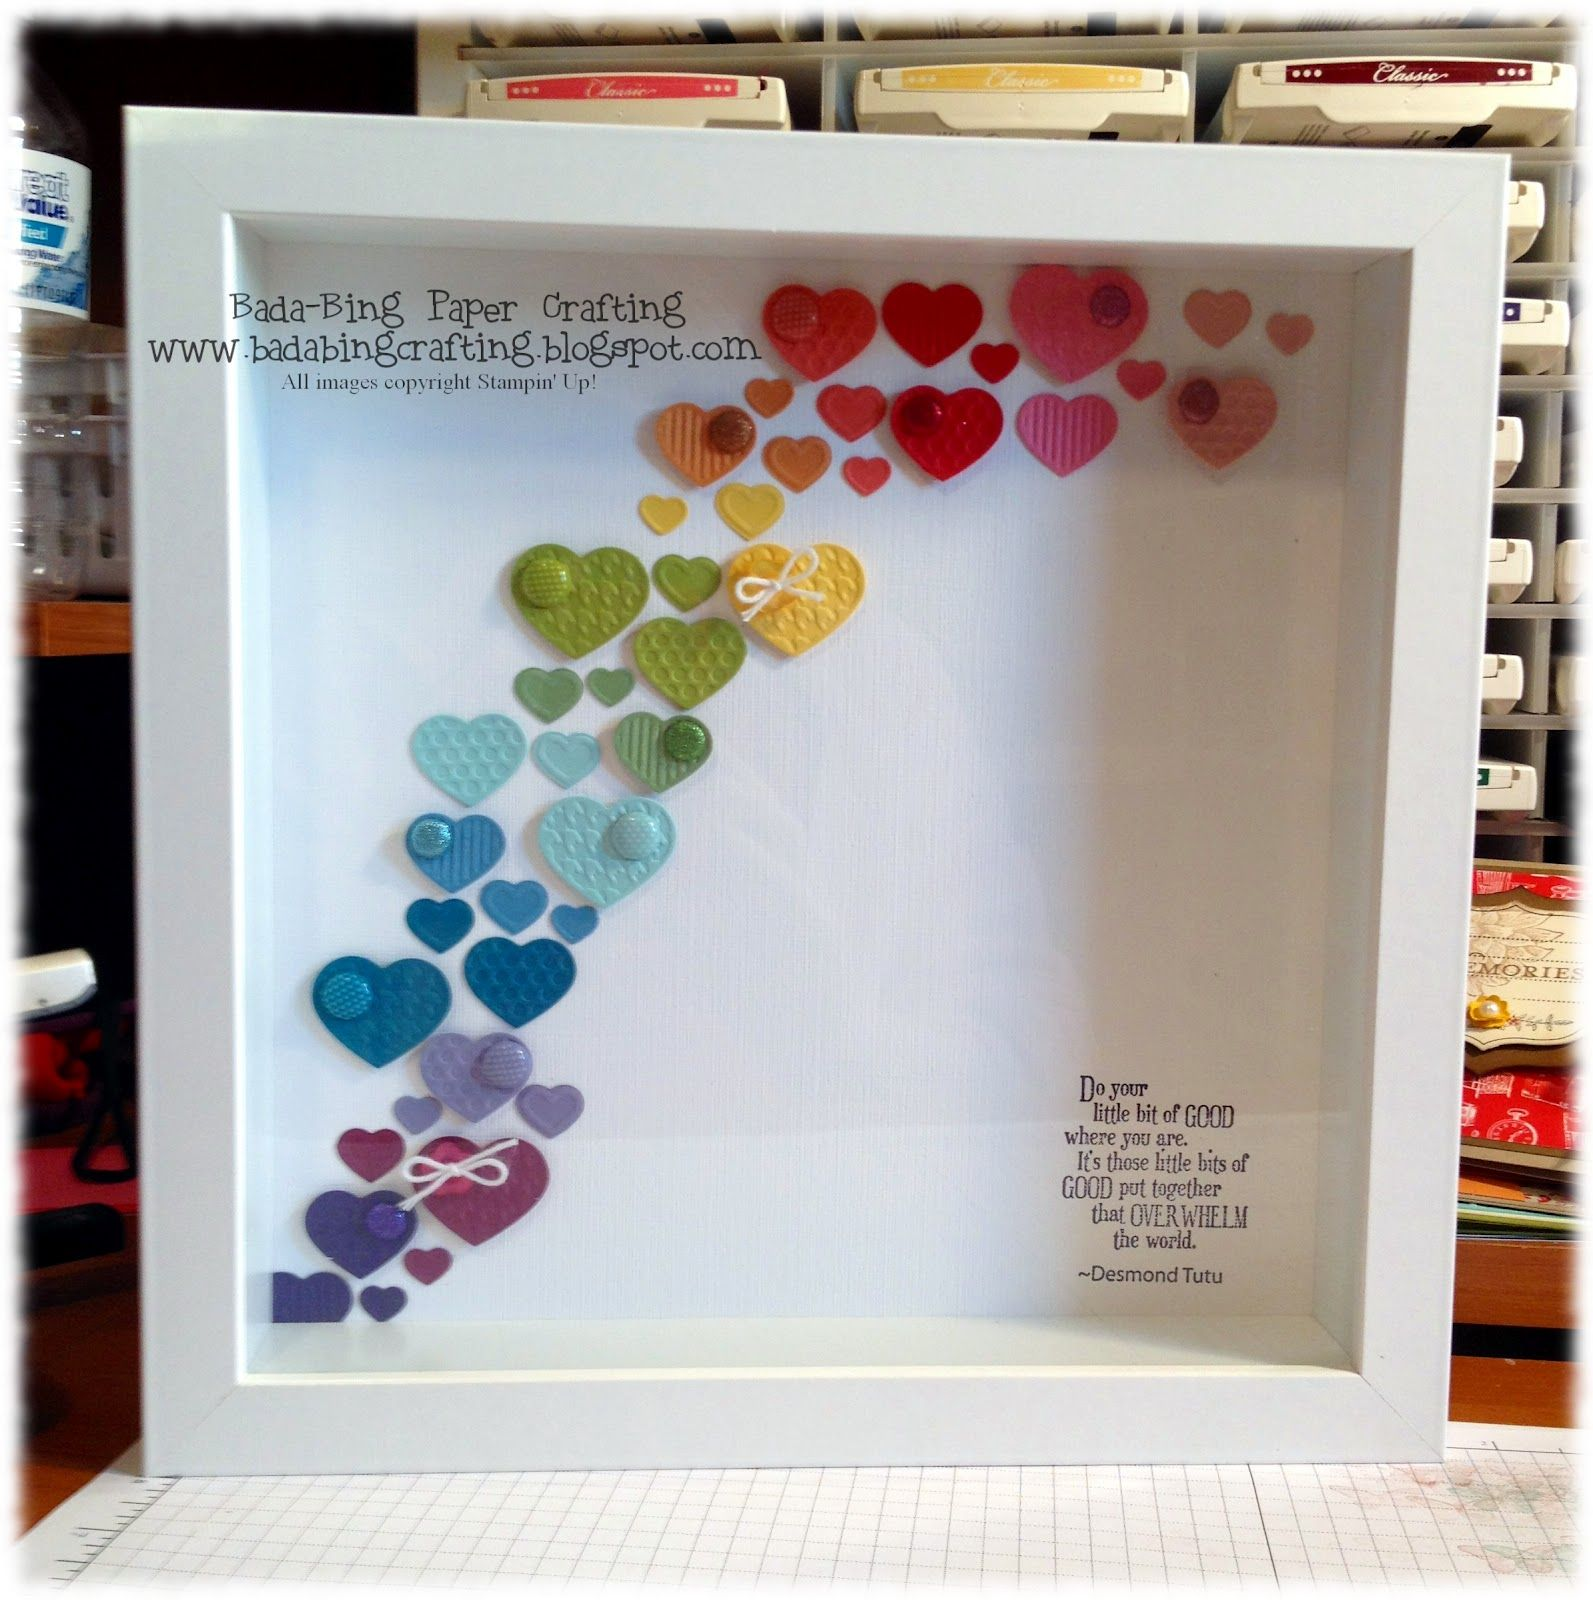 Shadow Box ~ Do your little bit of GOOD where you are...